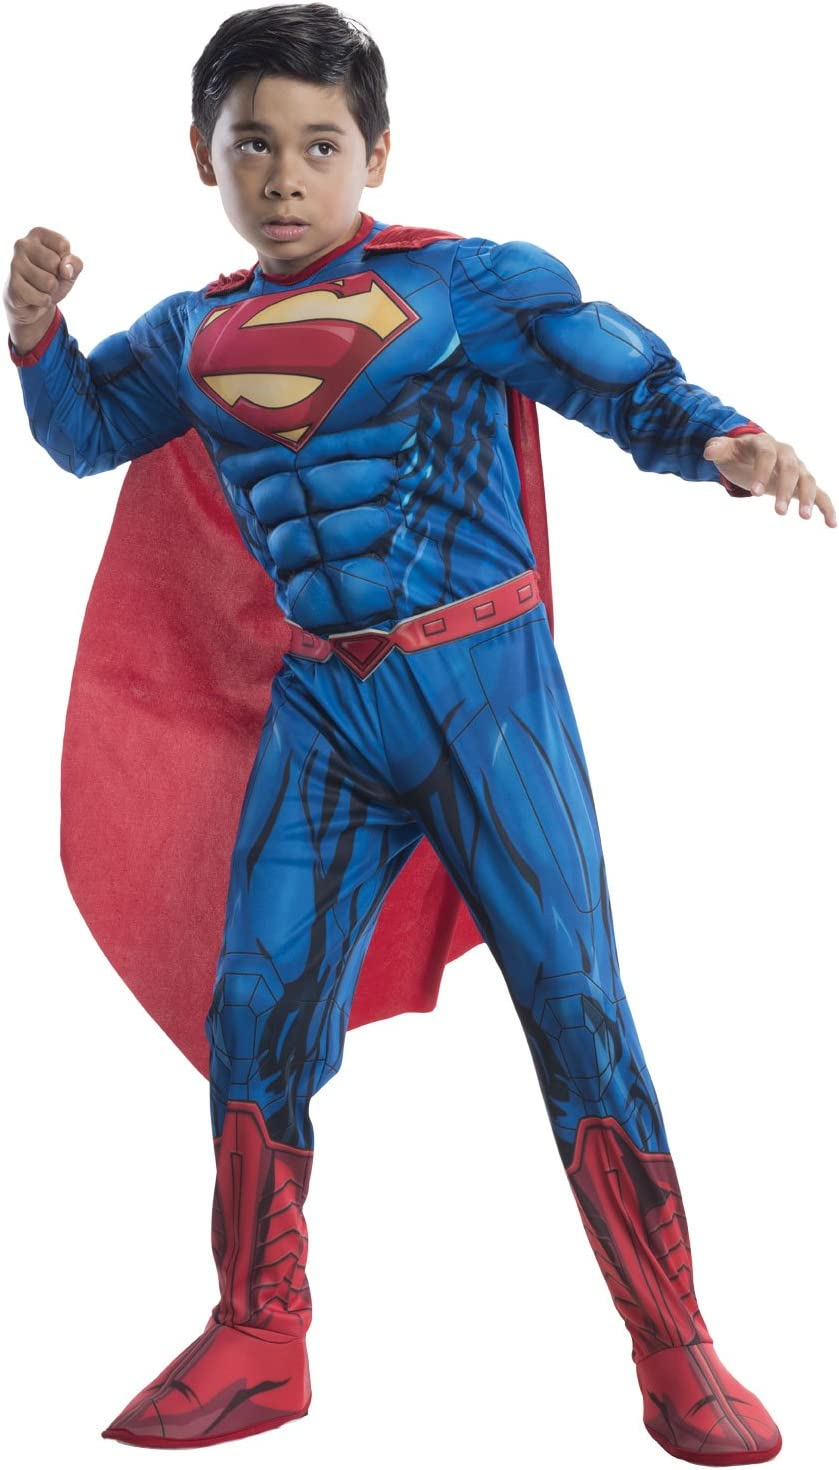 Rubies DC Comics Deluxe Muscle-Chest Superman Costume, Medium (8-10)